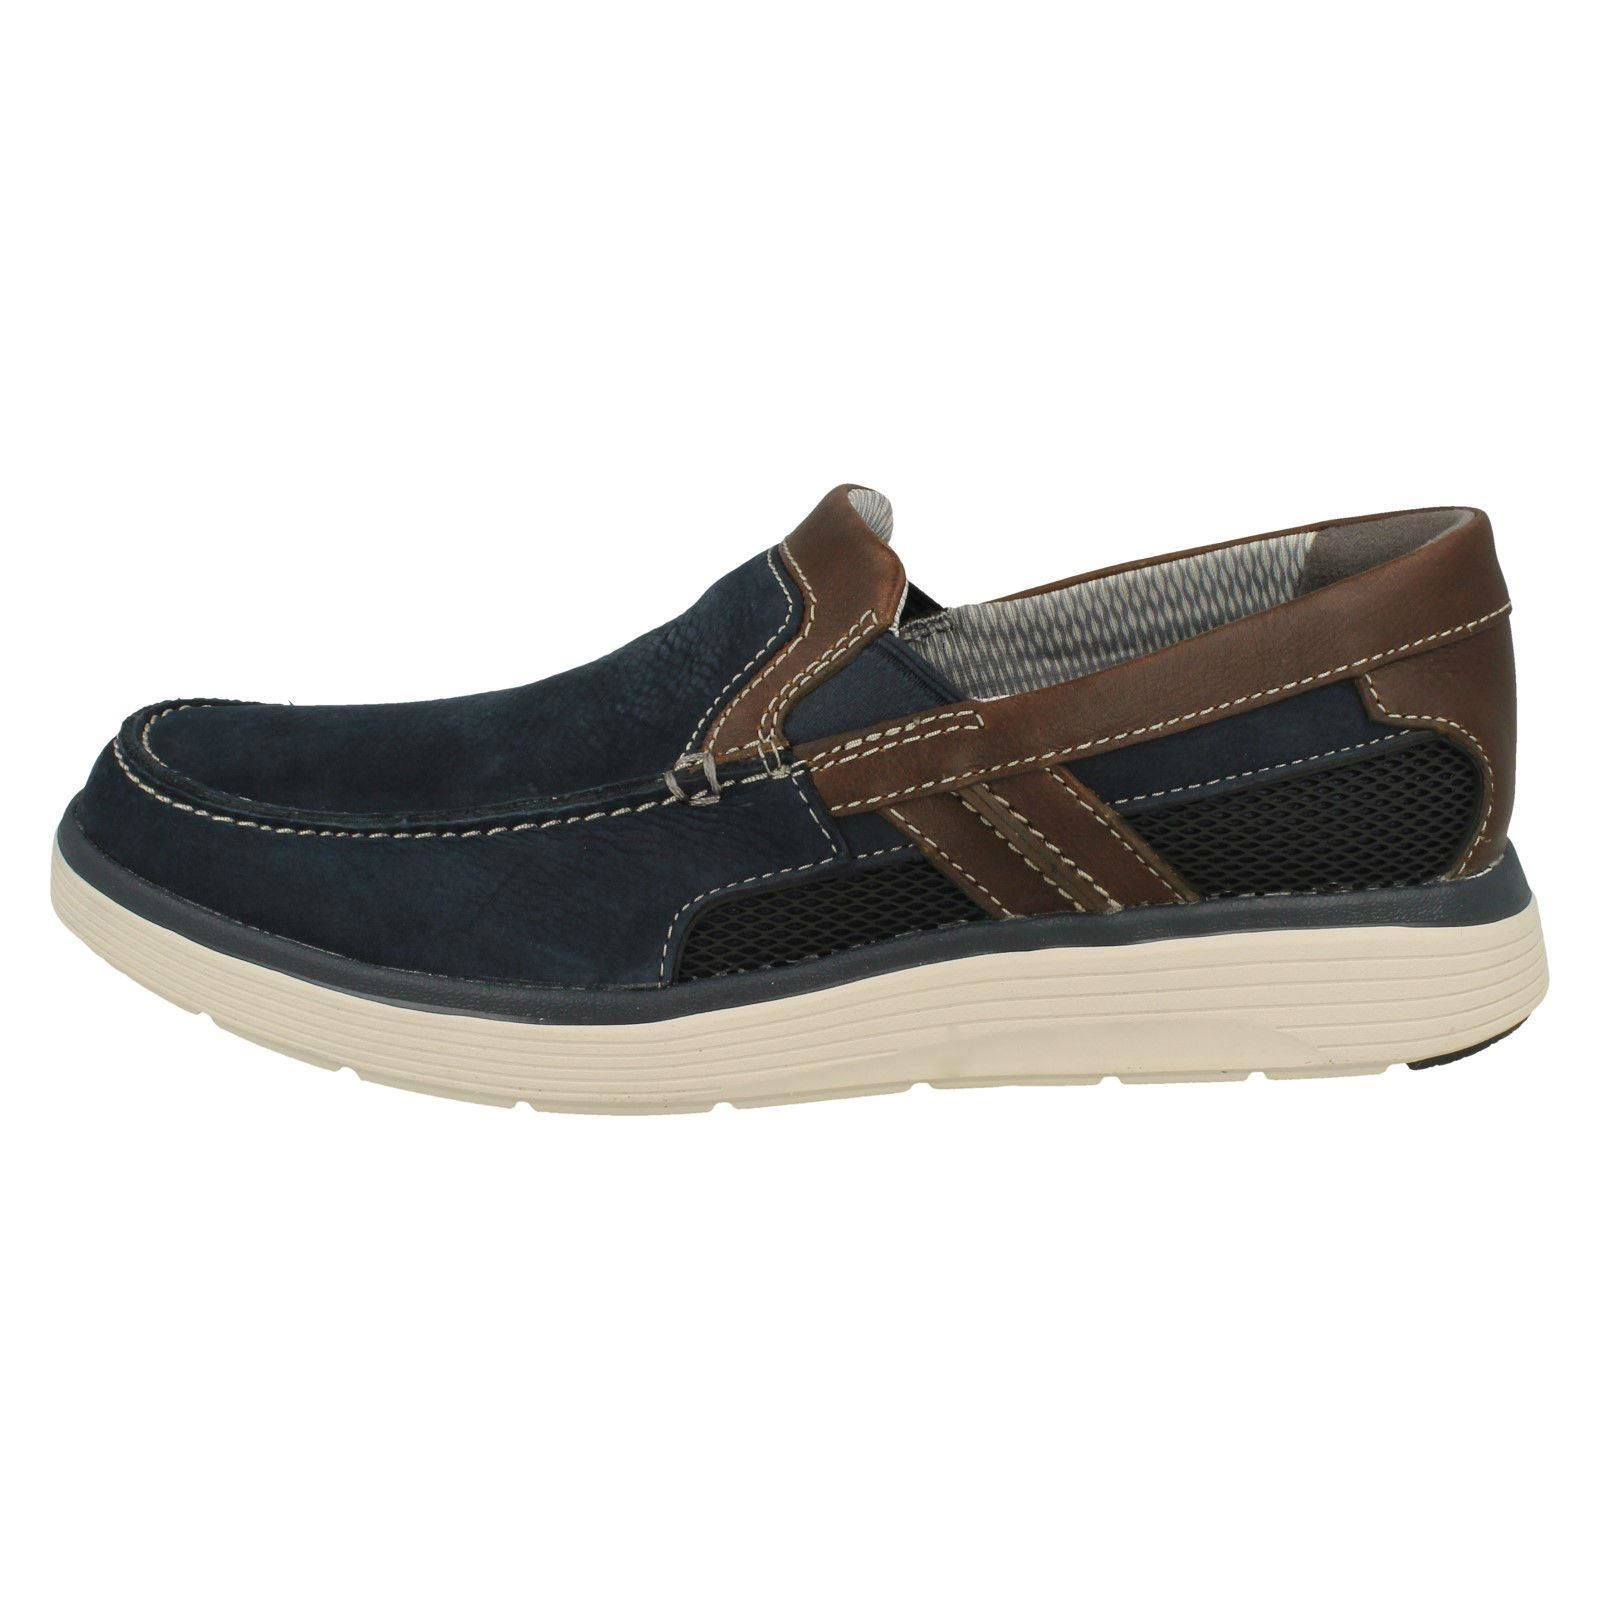 Men's Unstructured by Clarks Casual Slip On Shoes Label - Un Abode Free